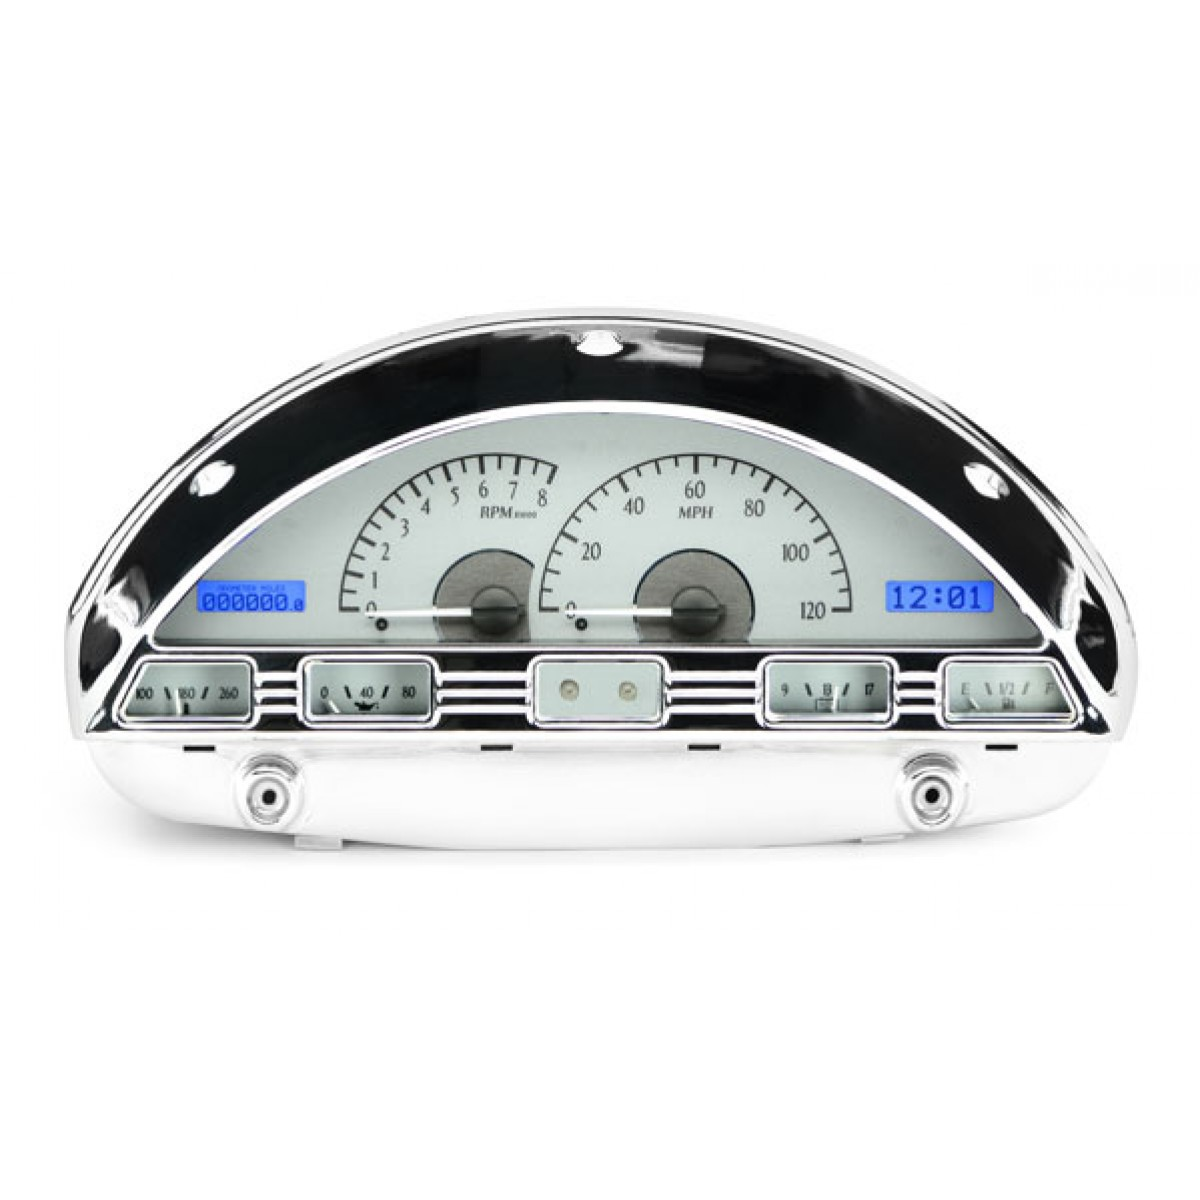 1956 ford pickup vhx gauge instruments dakota digital vhx 56f pu